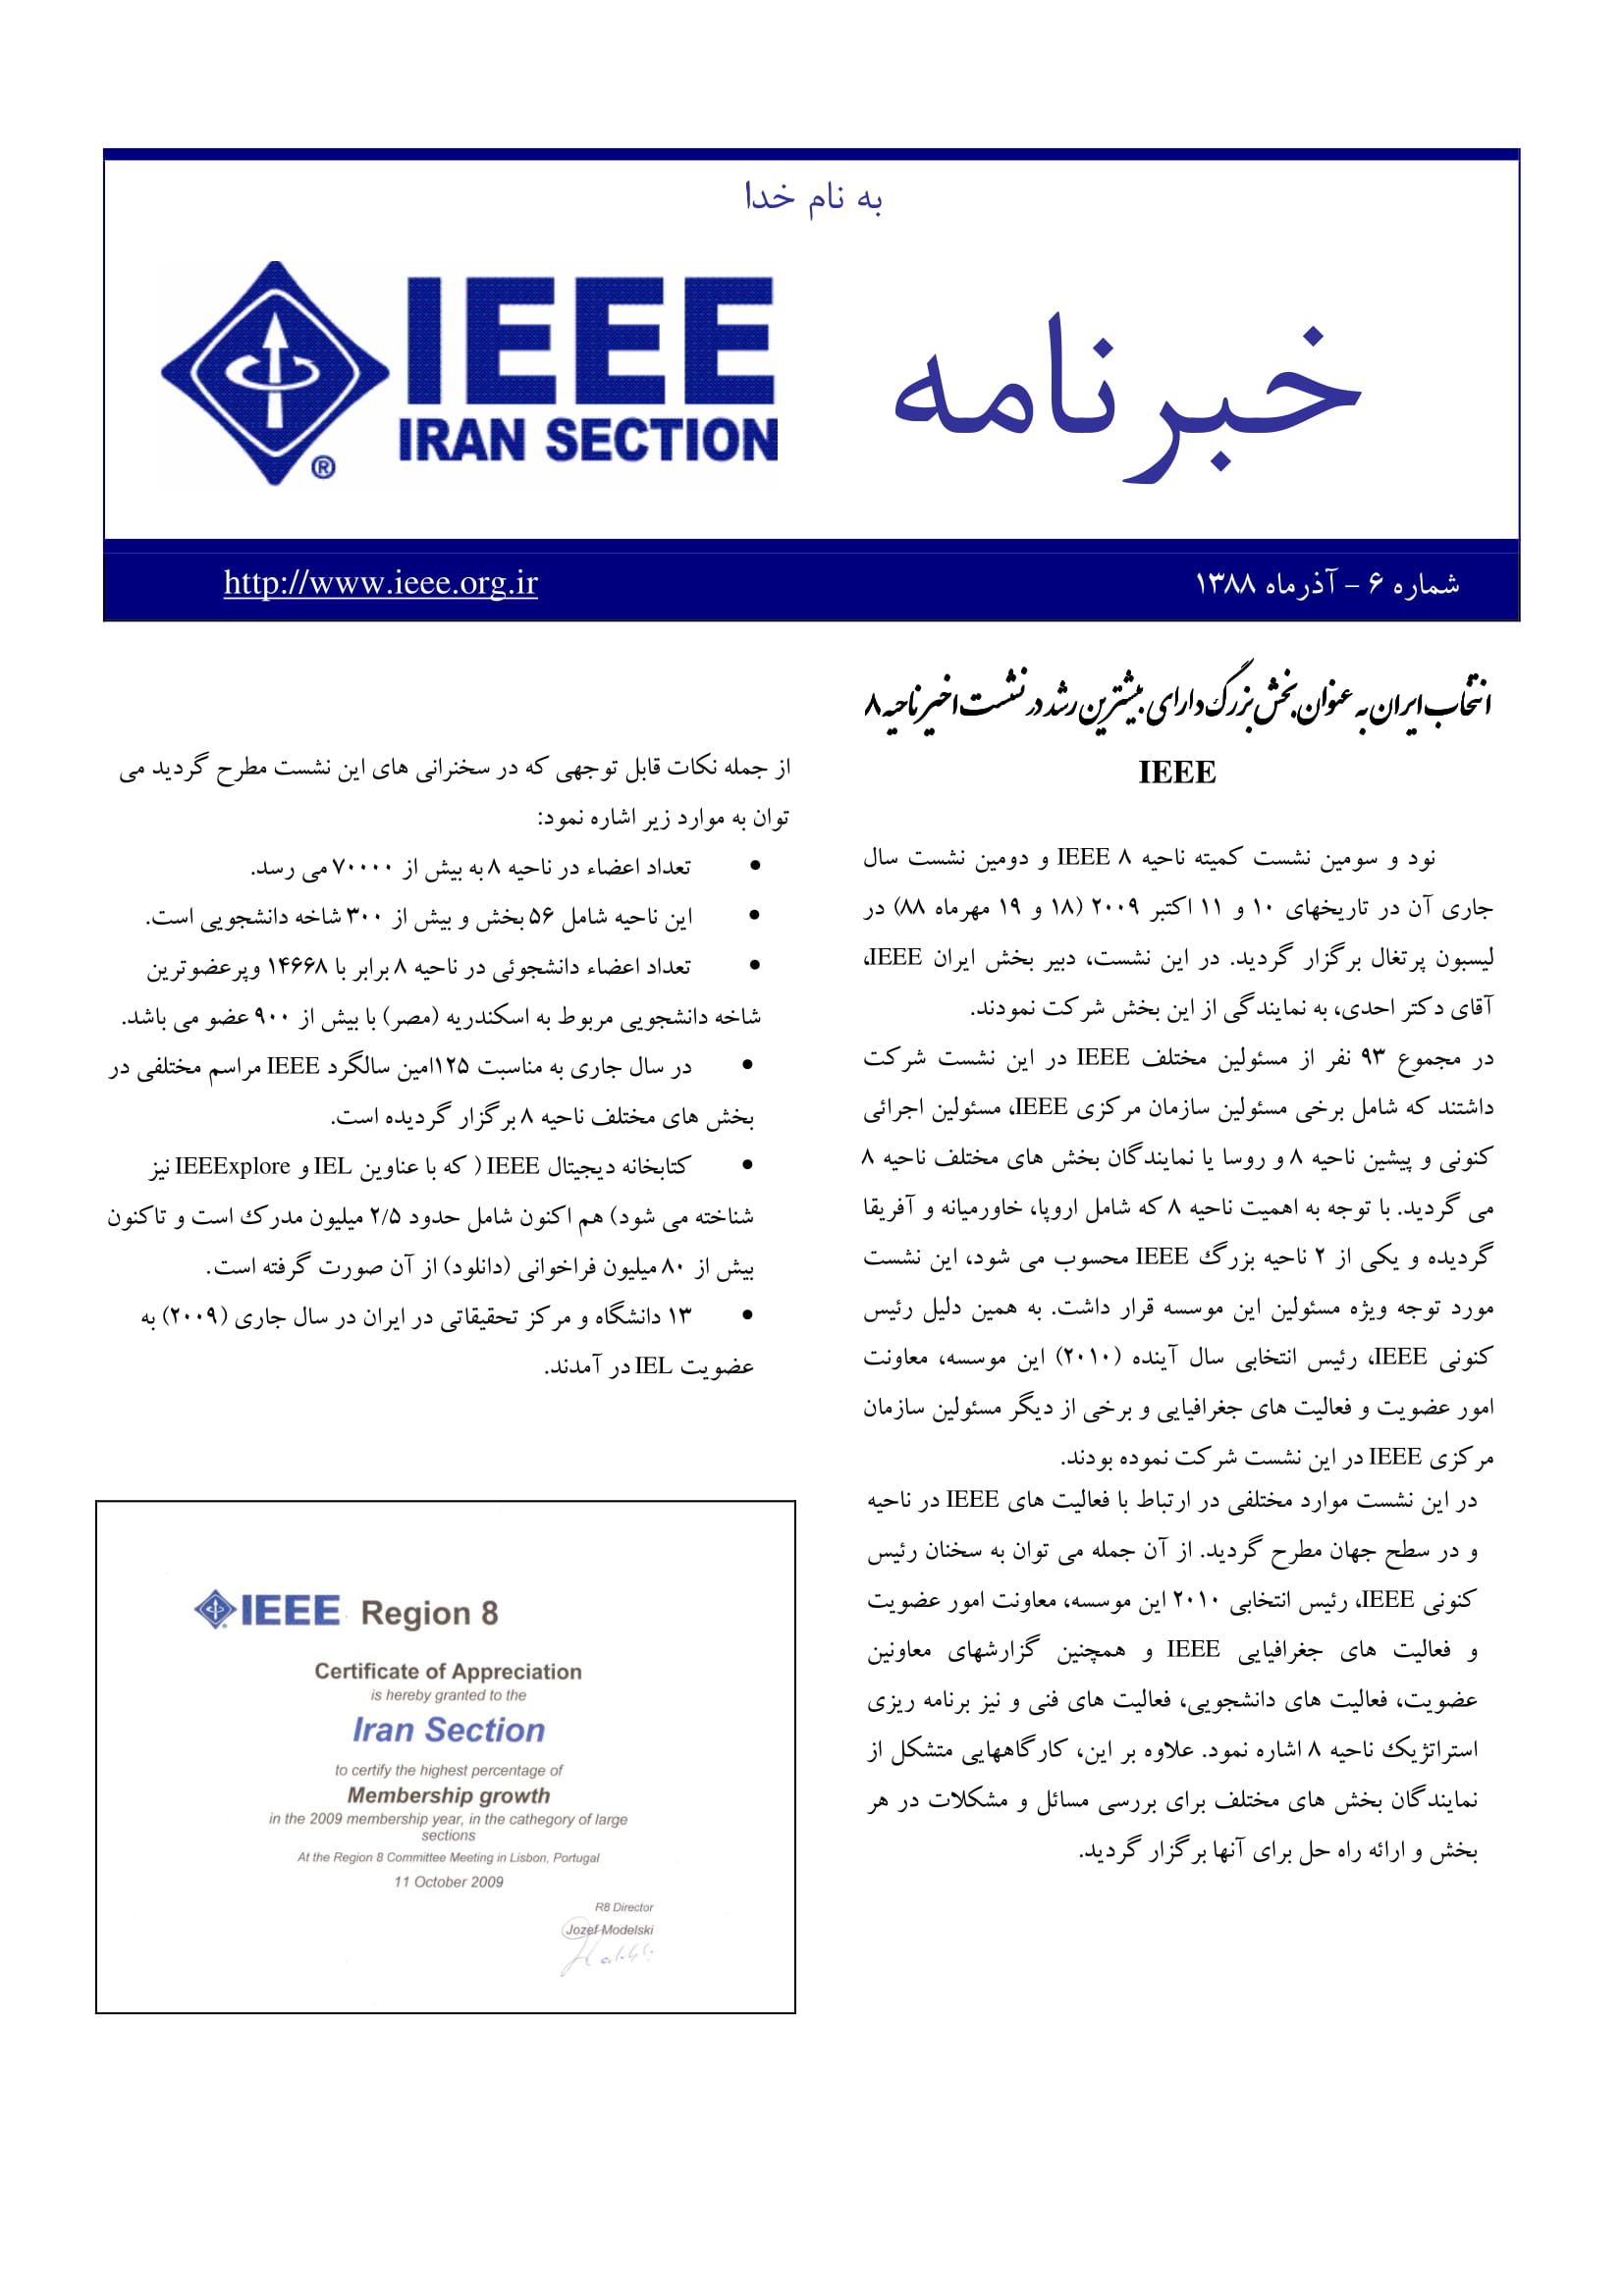 IEEE-Iran-Section_Newsletter_Azar_1388_No.6-1